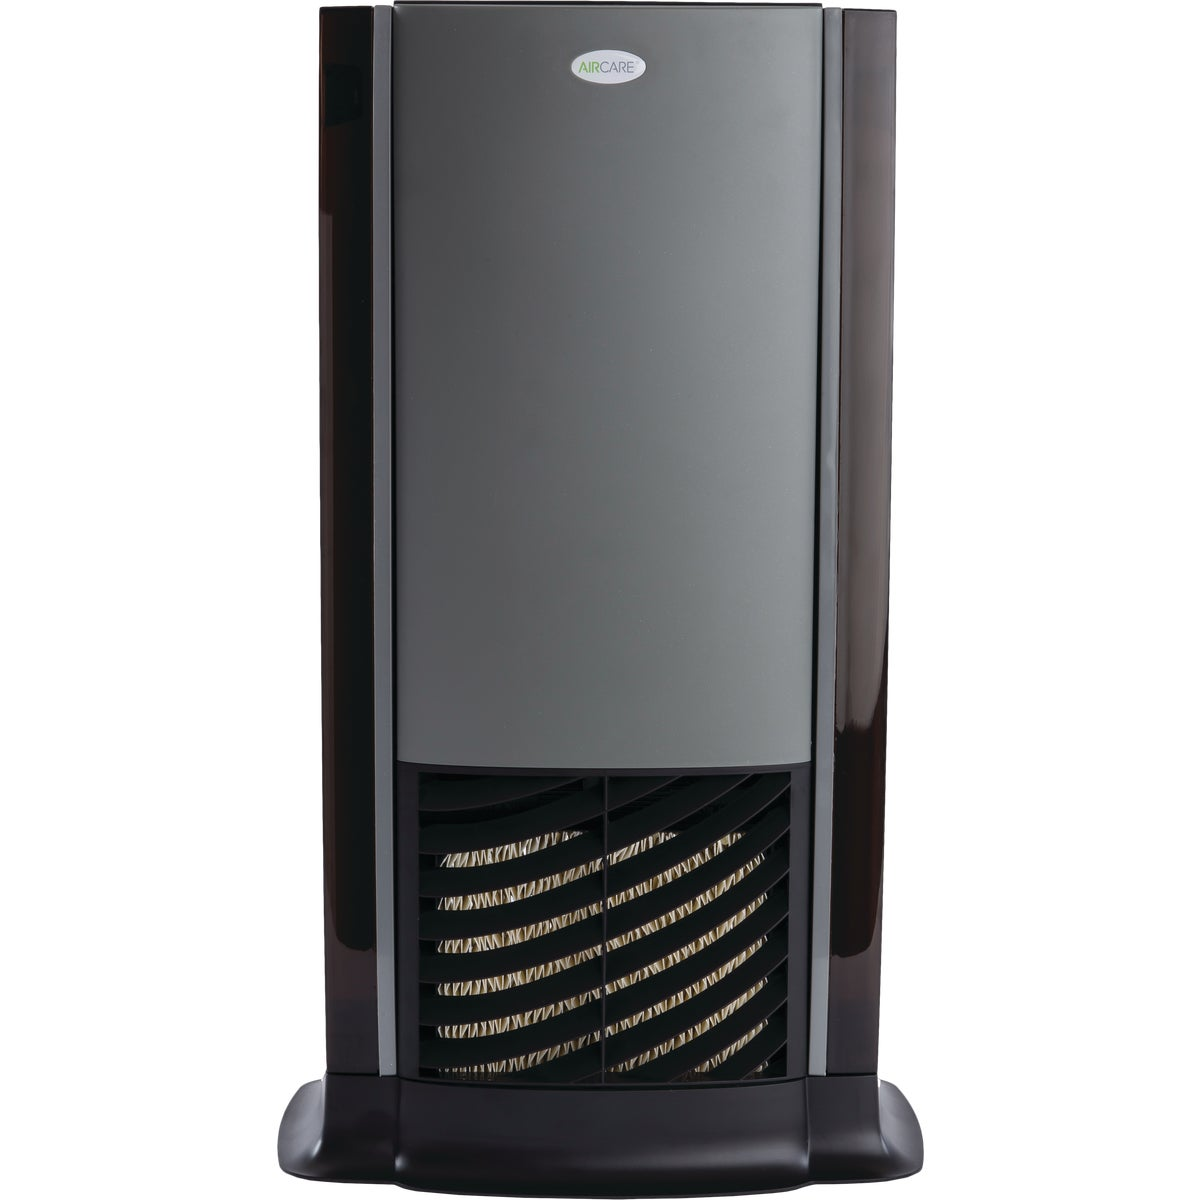 6GPD TOWER HUMIDIFIER - D46 720 by Essick Air Products